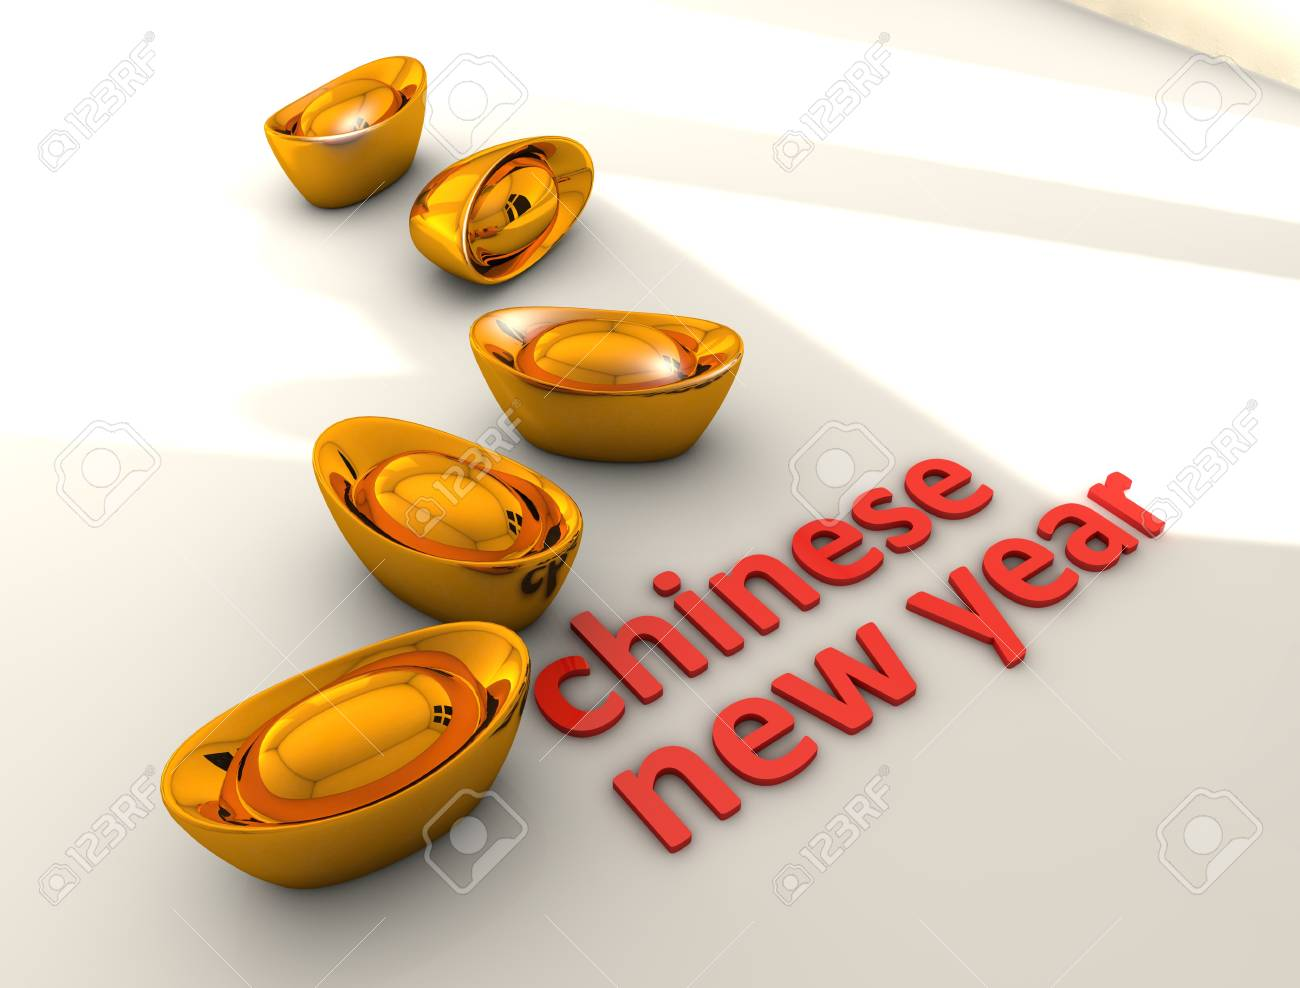 3d rendering, Chinese new year concept illustration, isolated on white. Stock Illustration - 11453959